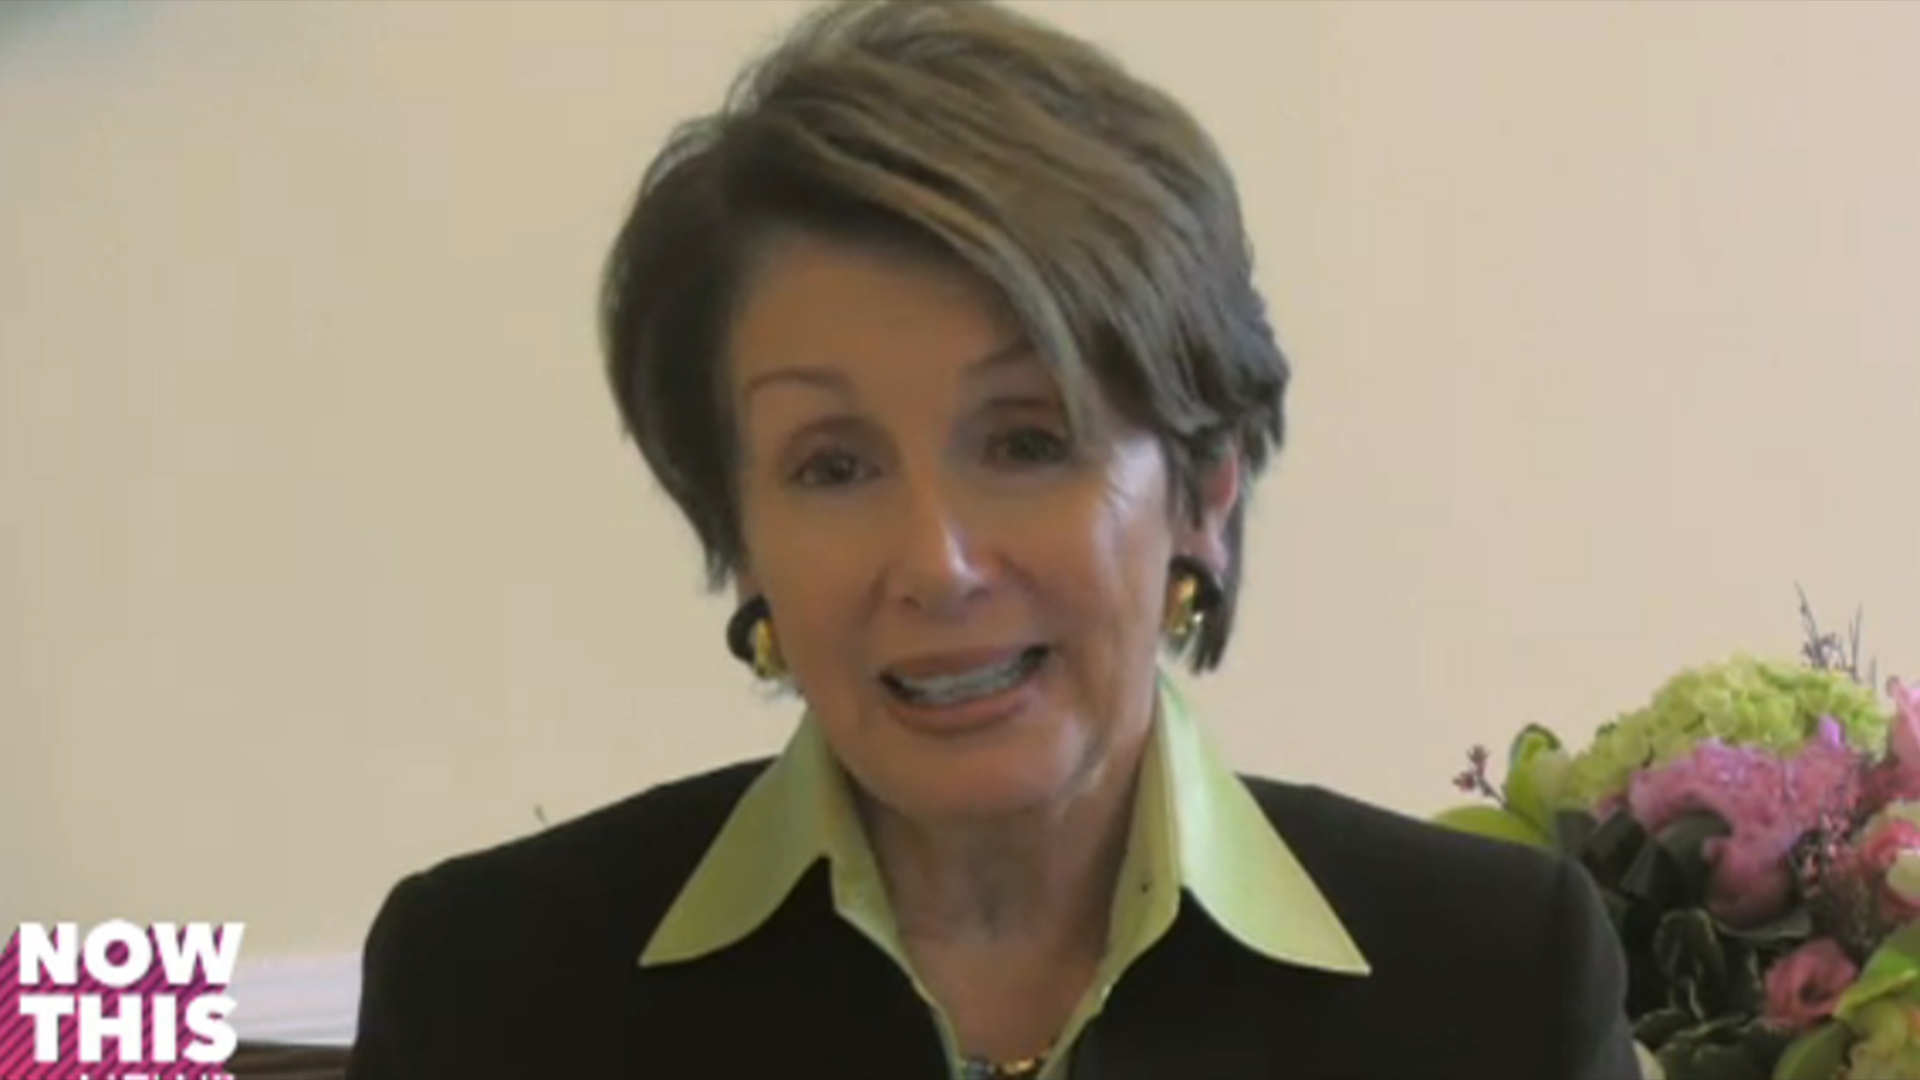 Nancy Pelosi on finding that special someone